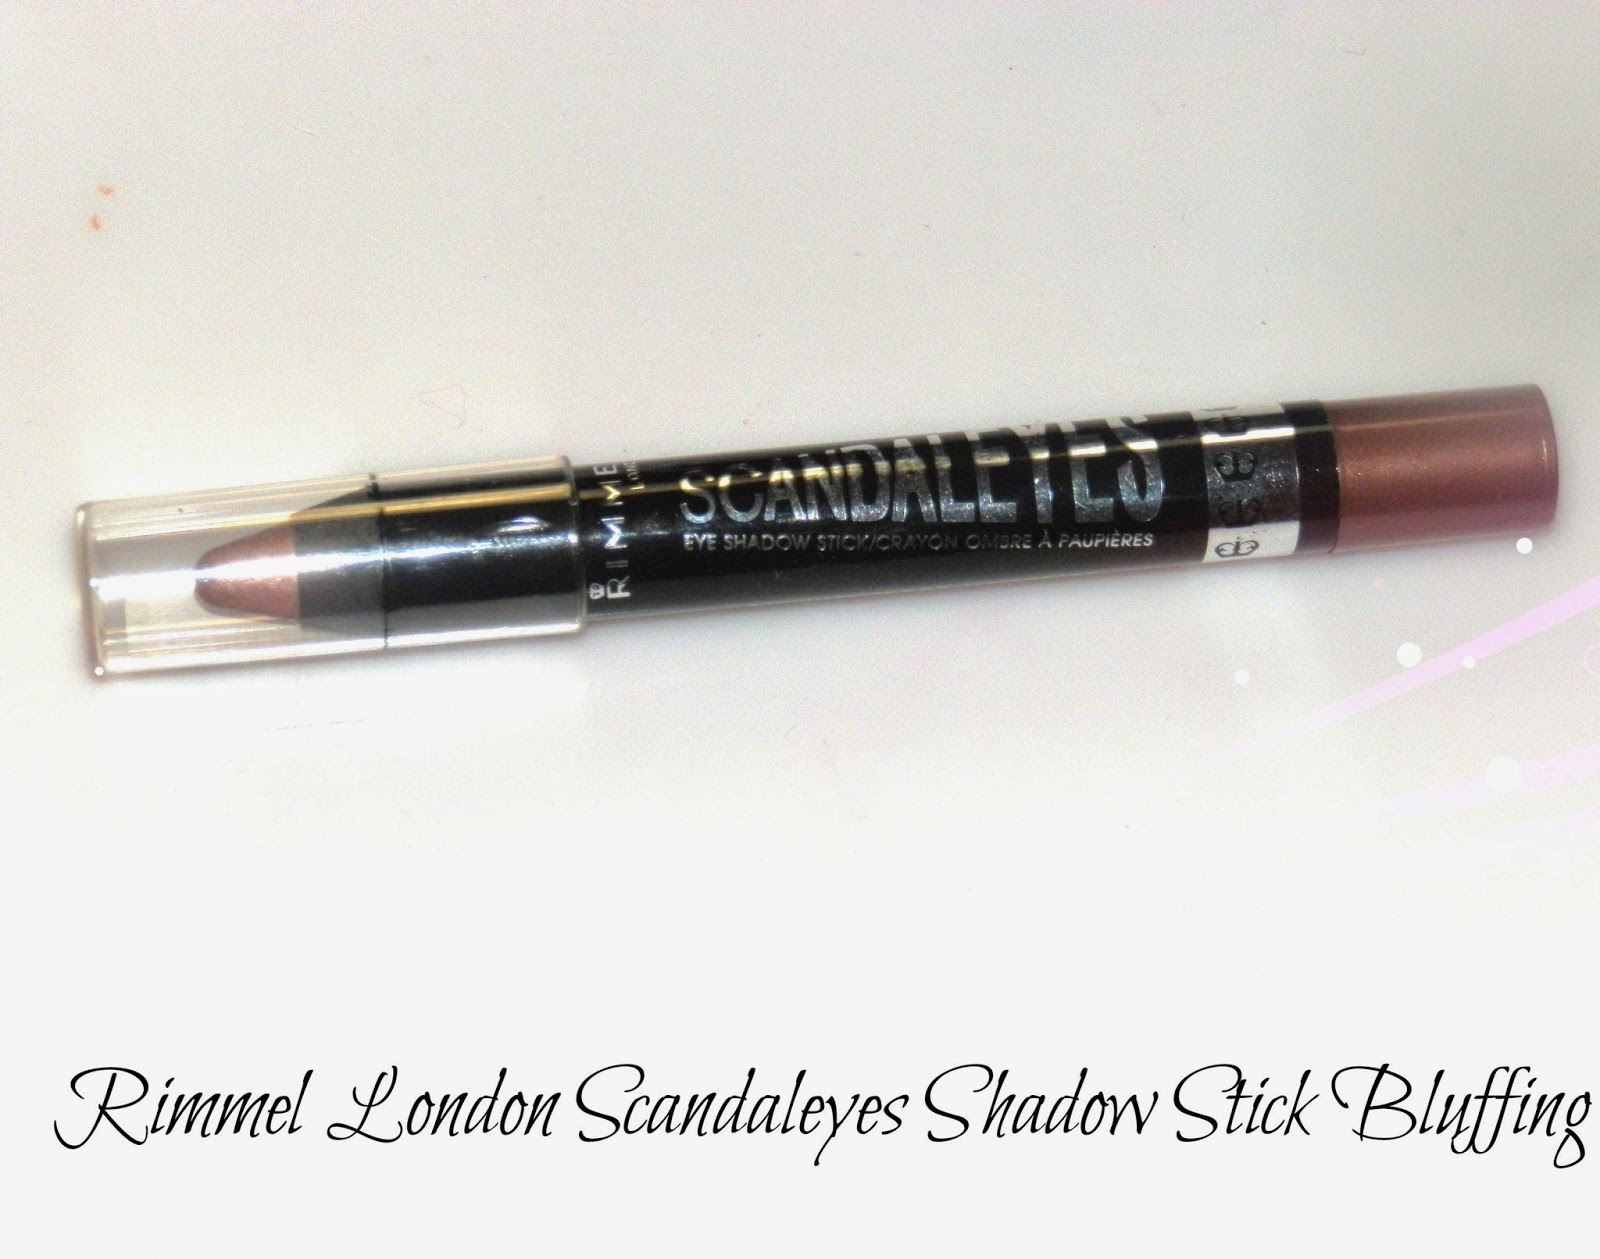 Rimmel London Scandaleyes Shadow Stick Bluffing Swatches